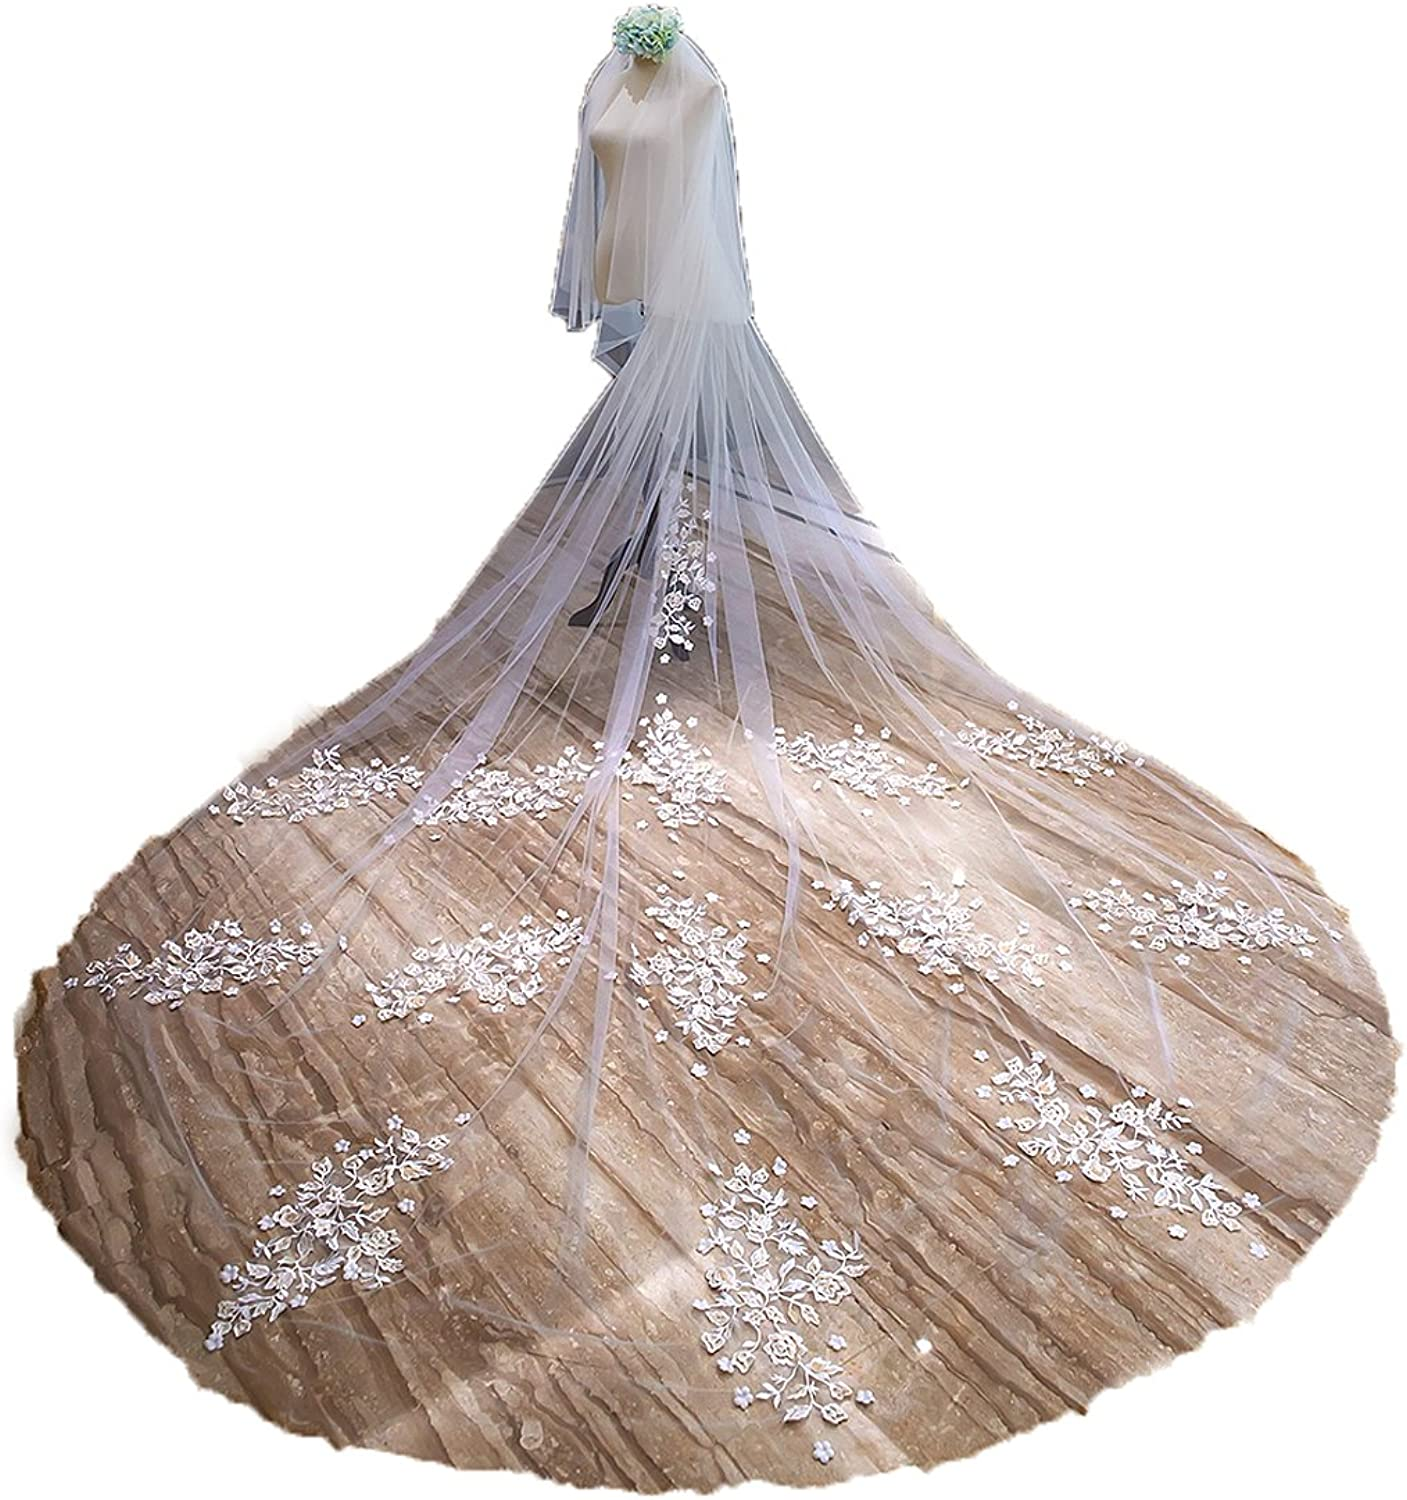 IBEXMAN 3x3.5 Meters Long Champagne Ivory Lace 2 Layers New Bridal Veils